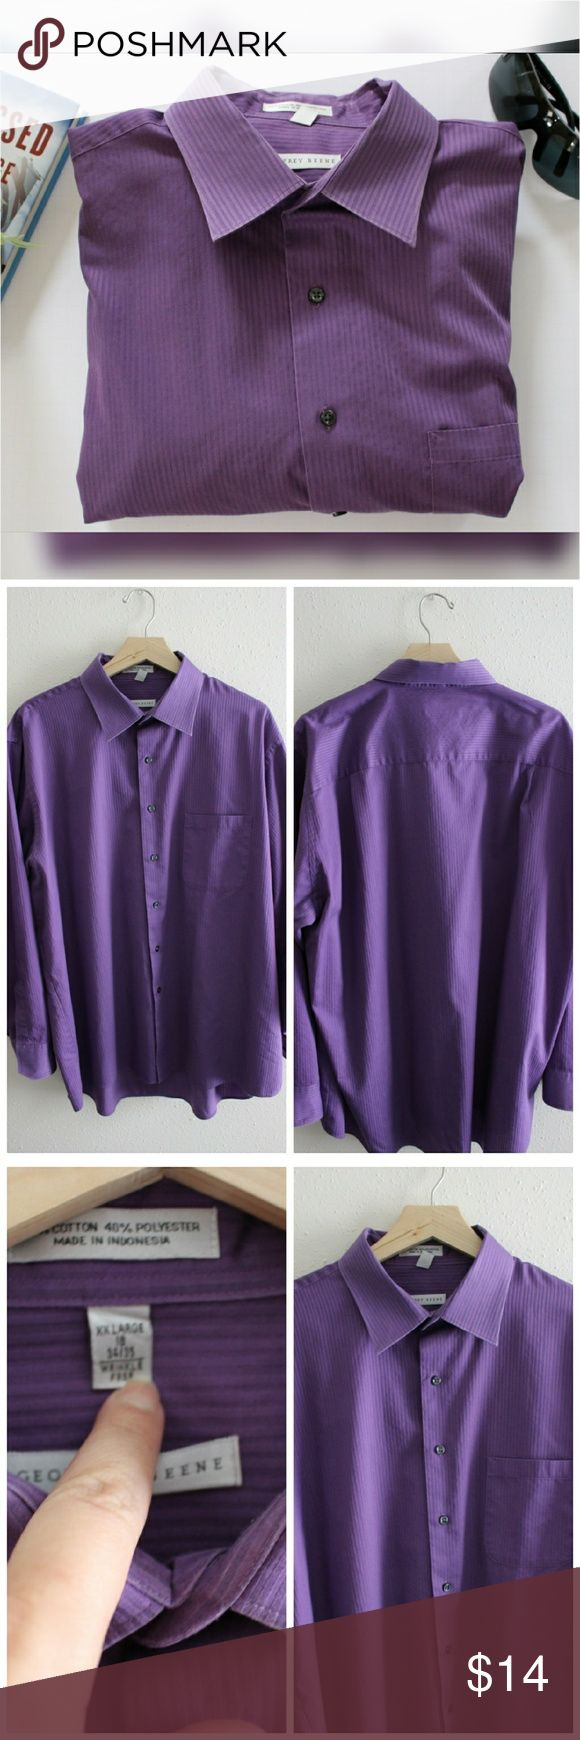 Geoffrey Beene Dress Shirt 60% cotton, 40% polyester. Wrinkle free. Size XXL. Neck:18, 34/35. Excellent condition. Geoffrey Beene Shirts Dress Shirts